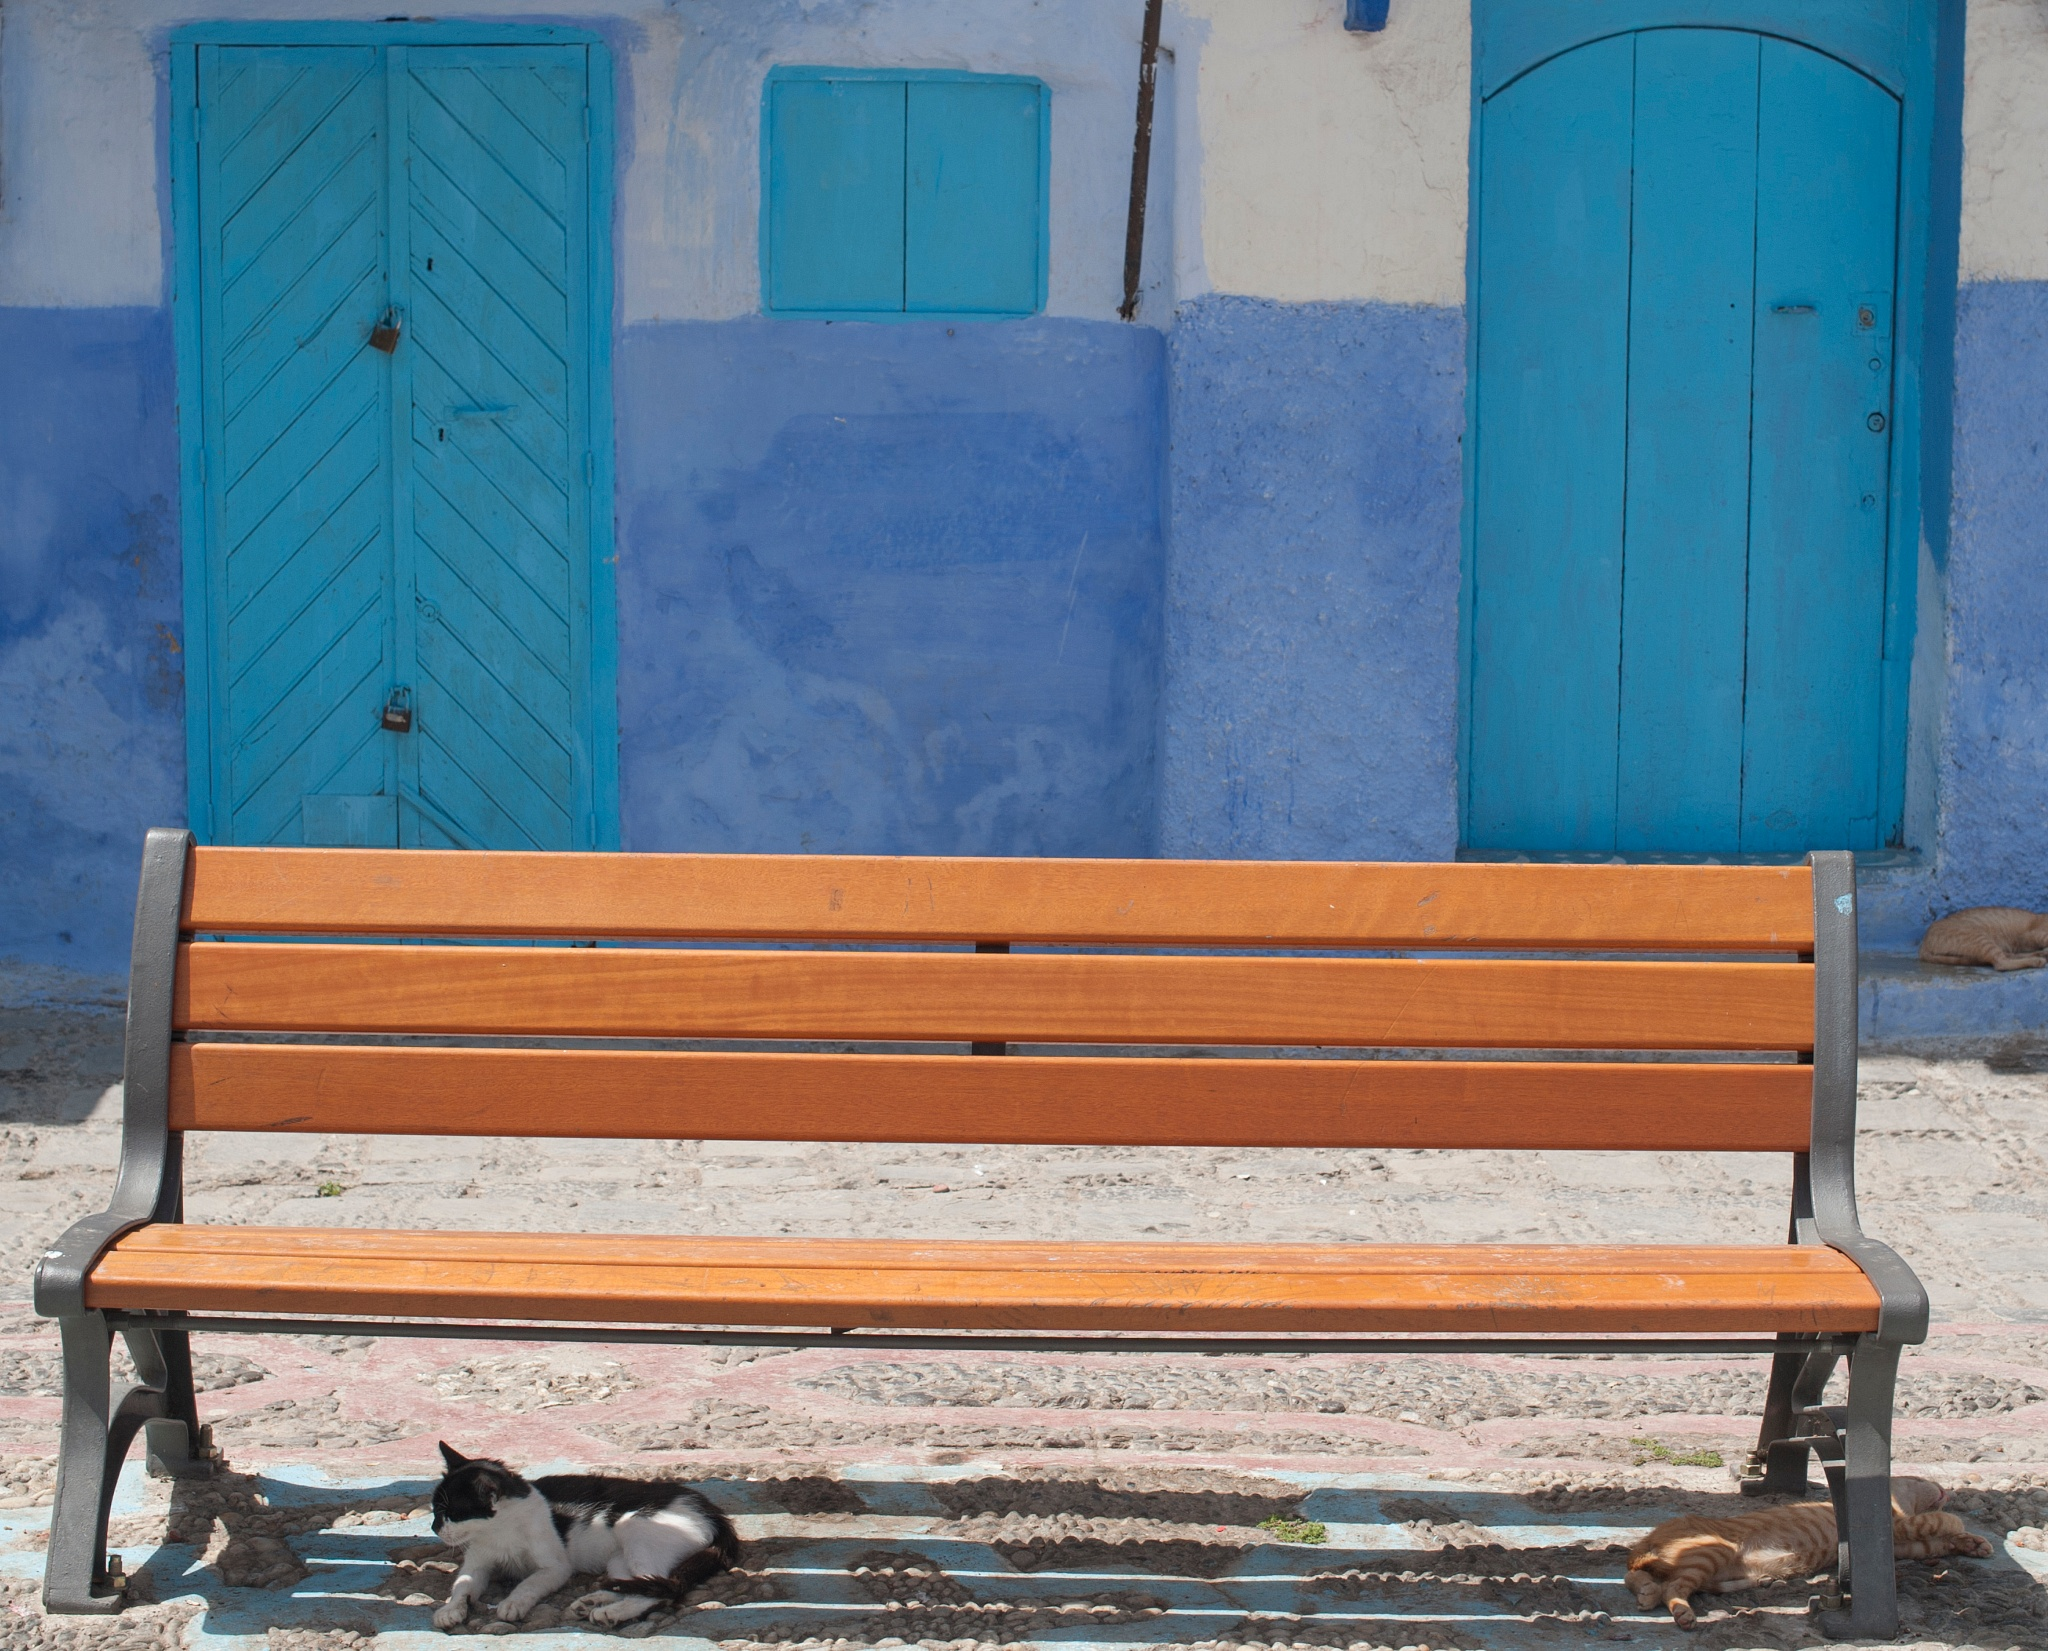 Chefchaouen cat, Morocco. by desmcmahon5